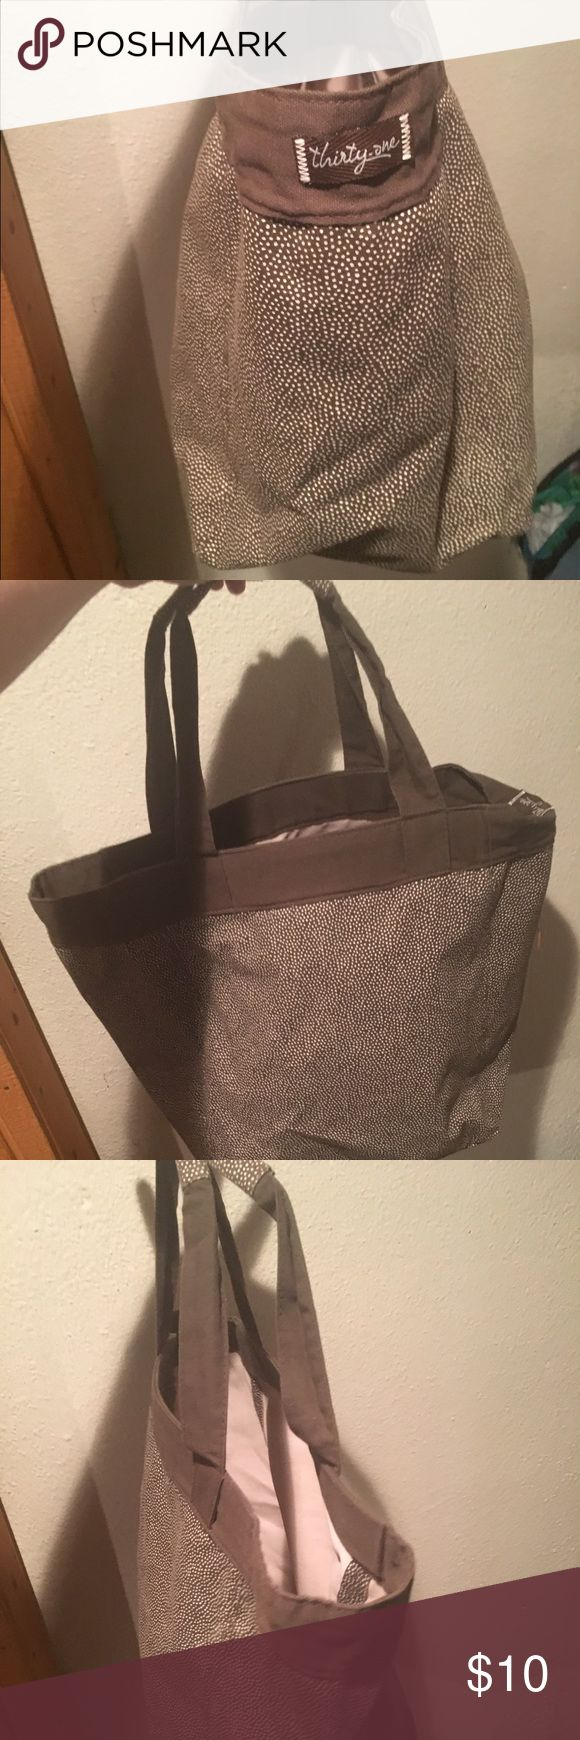 31 bag with no name written on it Brown 31 bag no writing on it. In excellent condition only used a few times thirty one  Bags Totes